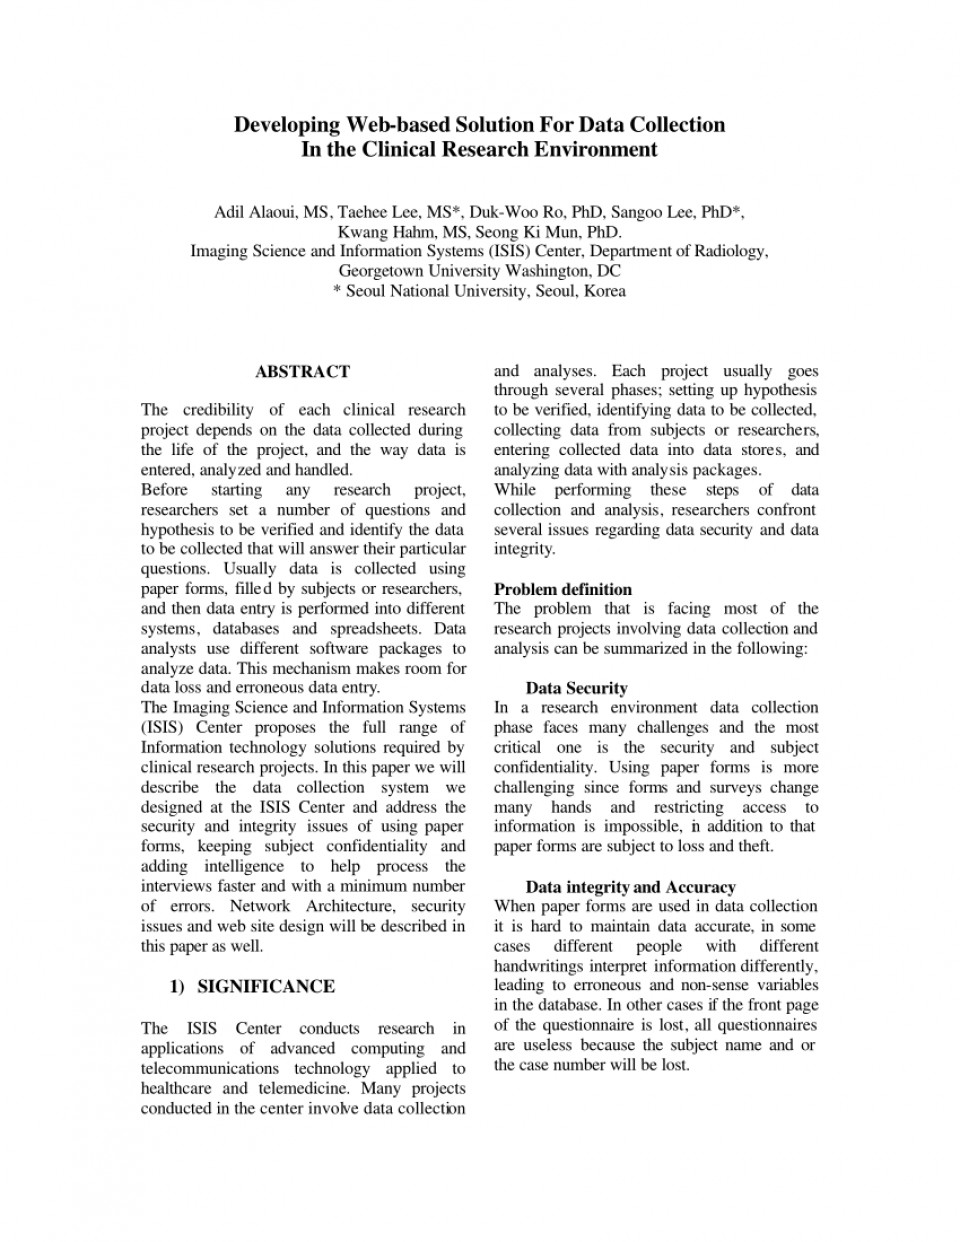 008 Research Paper Largepreview Database Security Fascinating Abstract 960